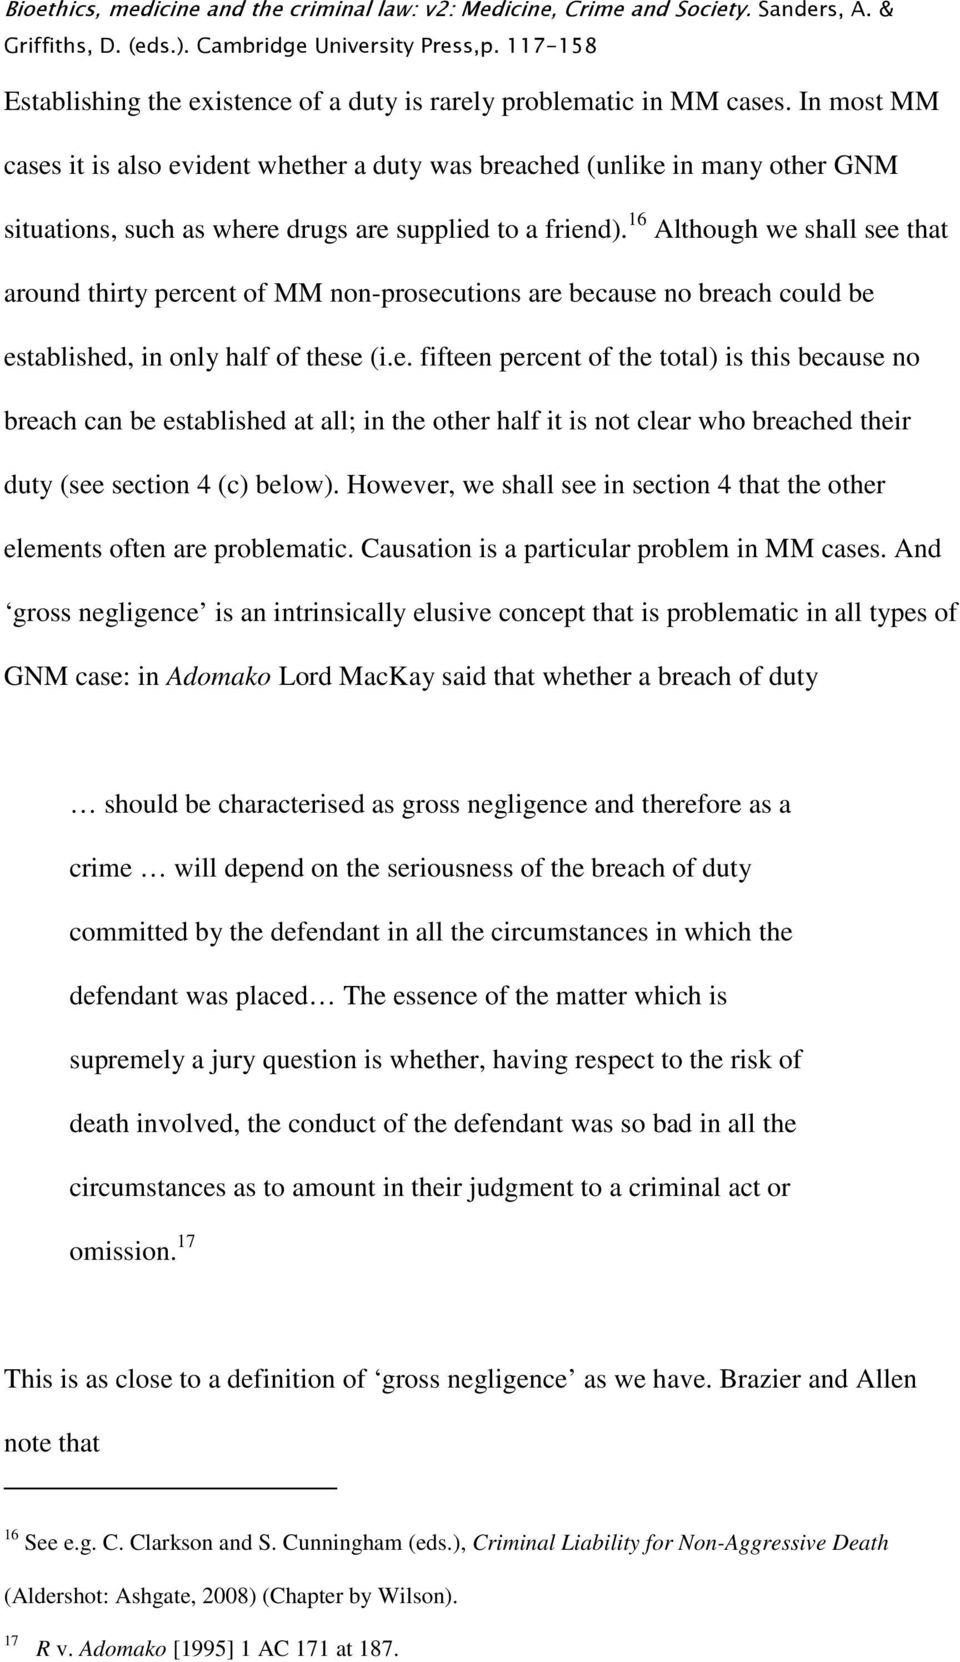 16 Although we shall see that around thirty percent of MM non-prosecutions are because no breach could be established, in only half of these (i.e. fifteen percent of the total) is this because no breach can be established at all; in the other half it is not clear who breached their duty (see section 4 (c) below).